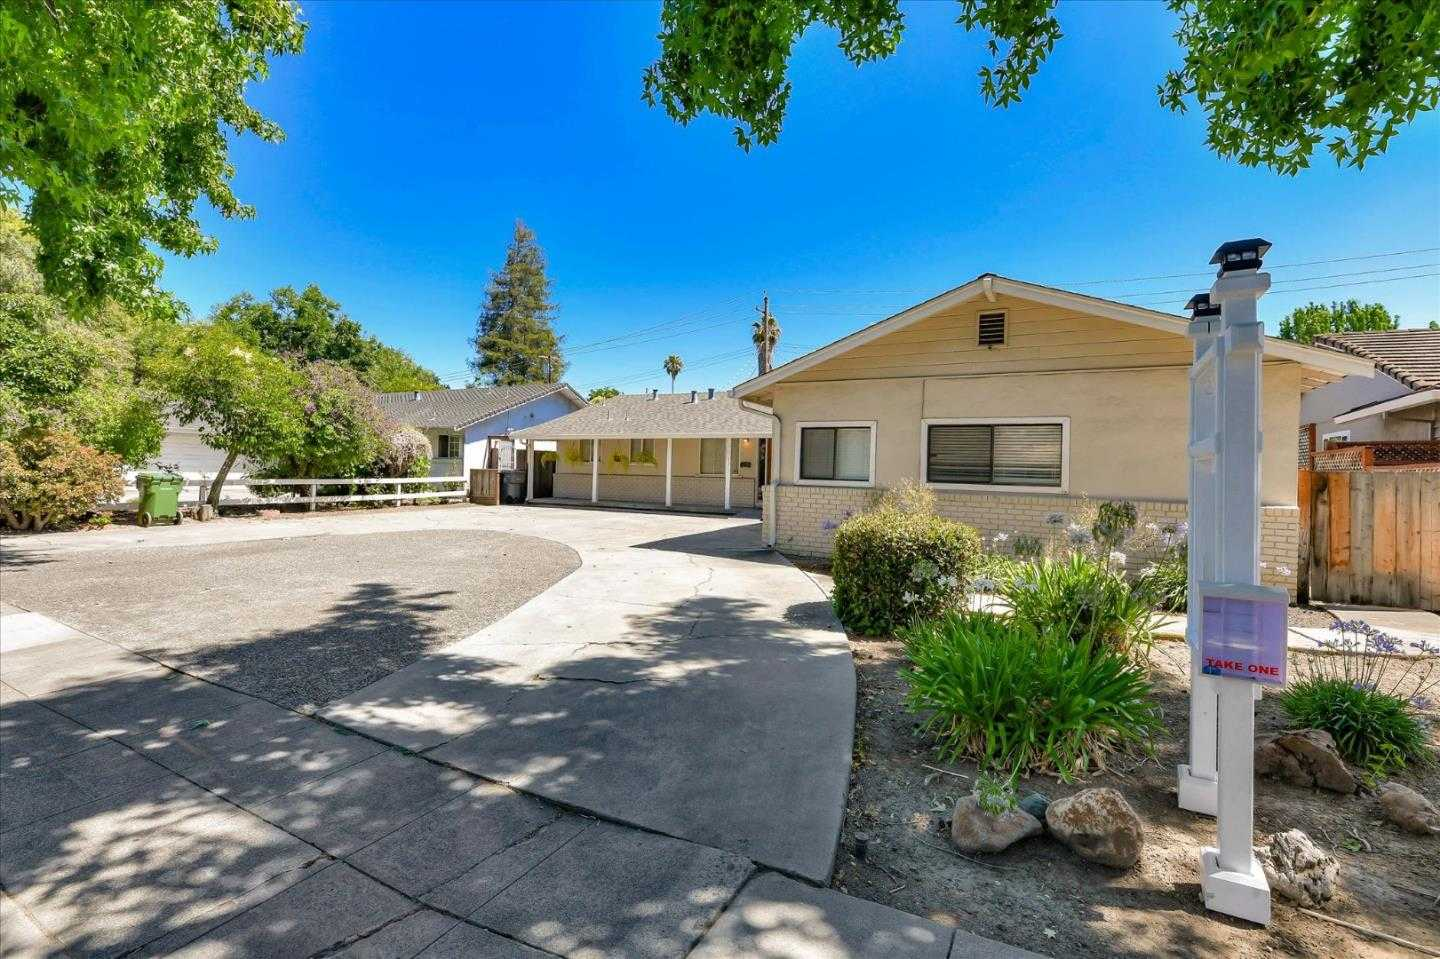 $1,250,000 - 6Br/2Ba -  for Sale in San Jose